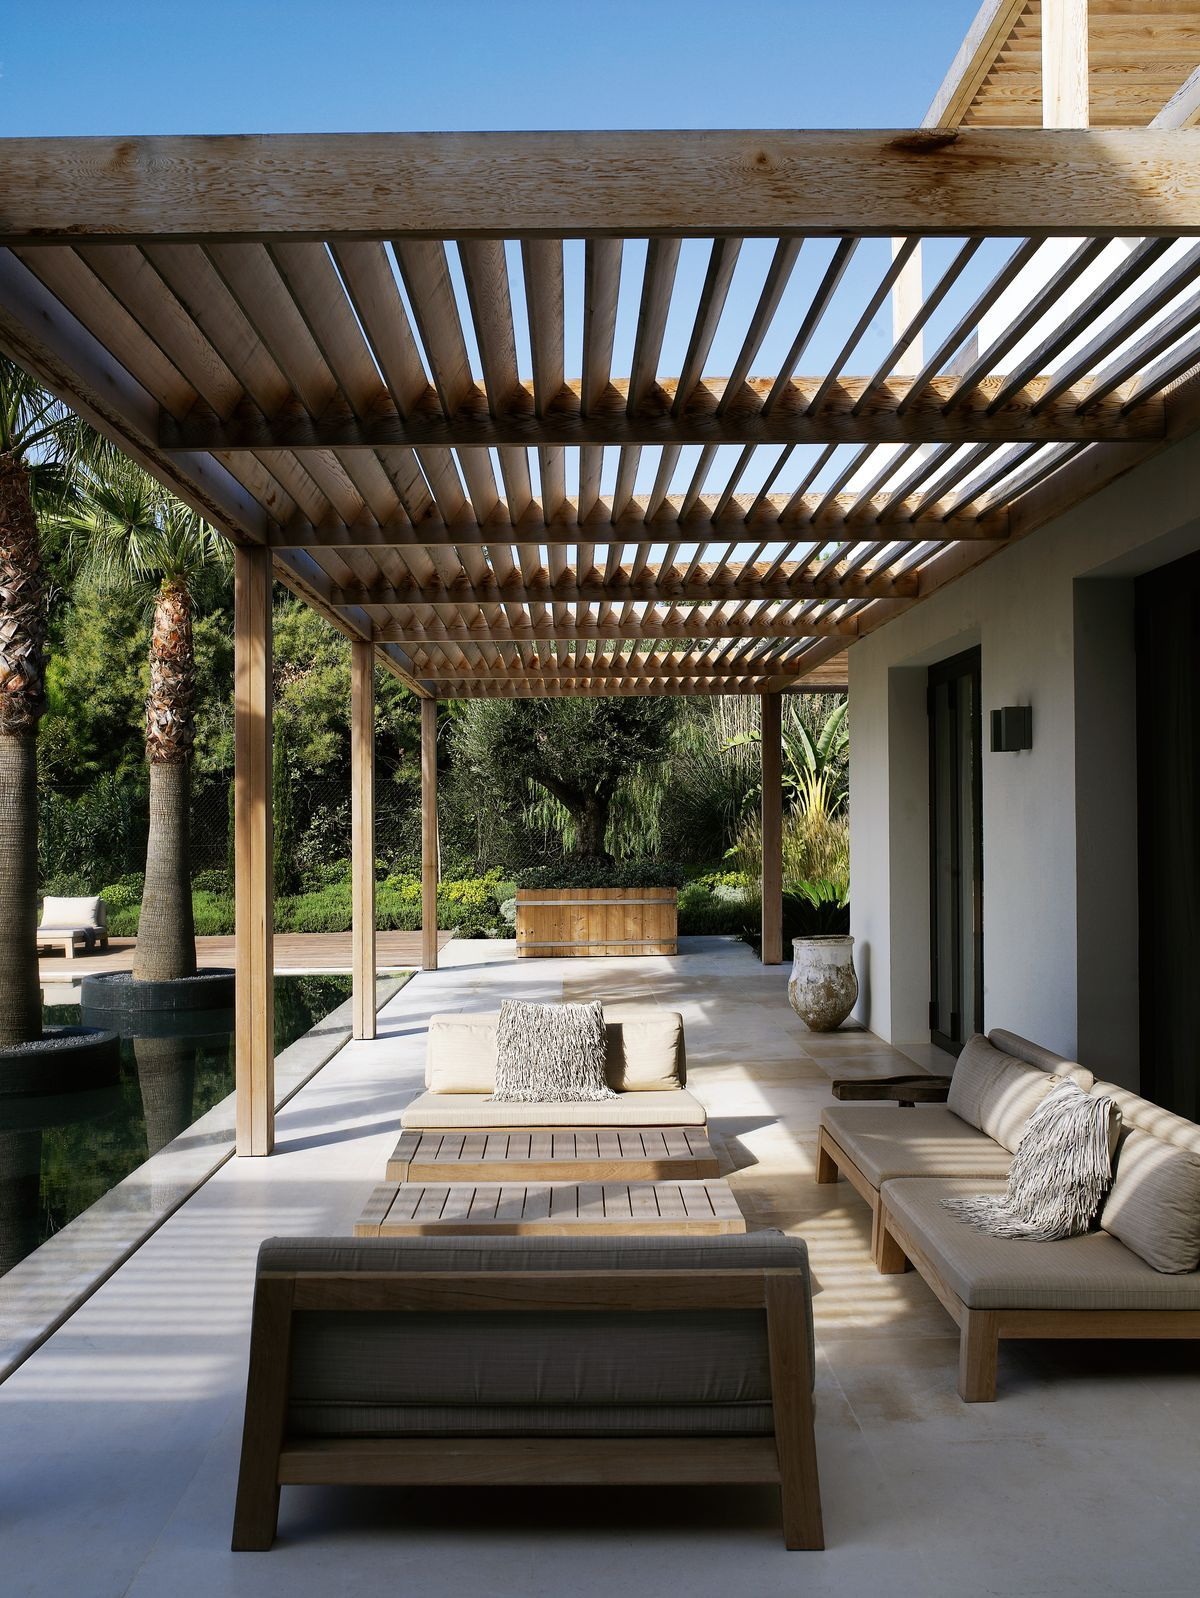 Modern Poolside Pergola Over Concrete Patio With